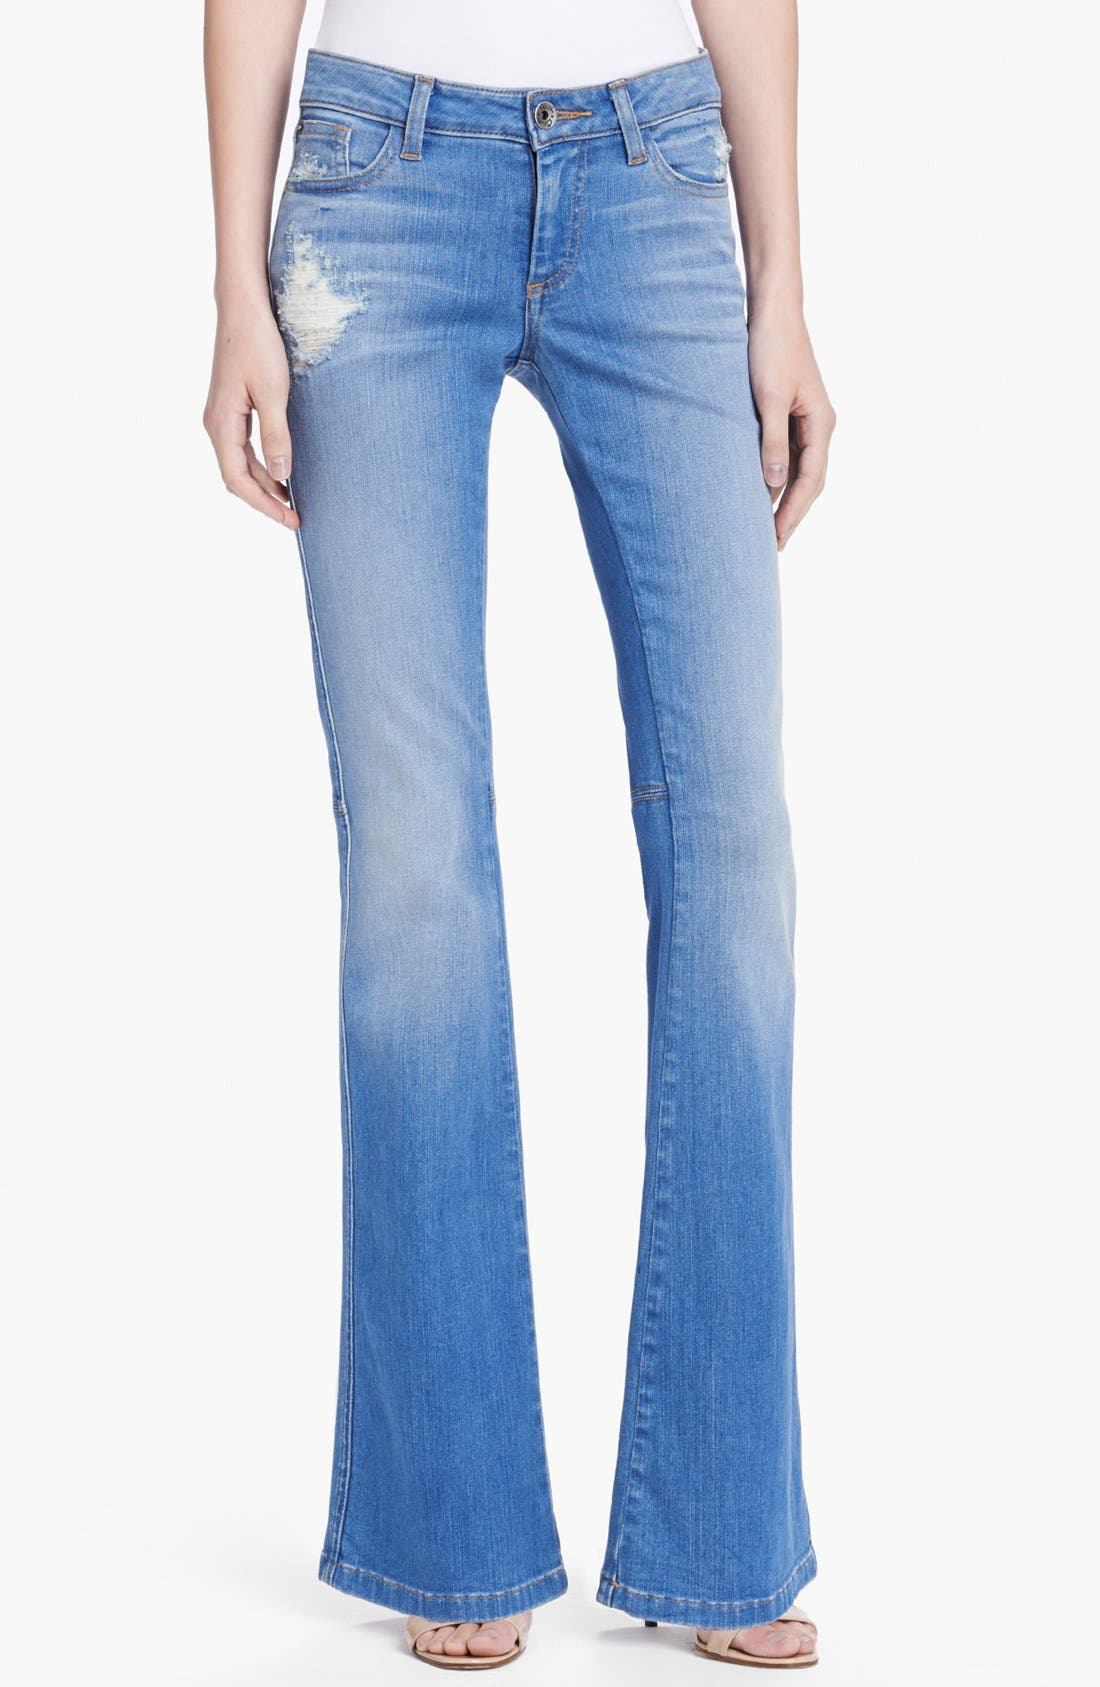 'Stacy' Distressed Bell Bottom Jeans,                             Main thumbnail 1, color,                             453